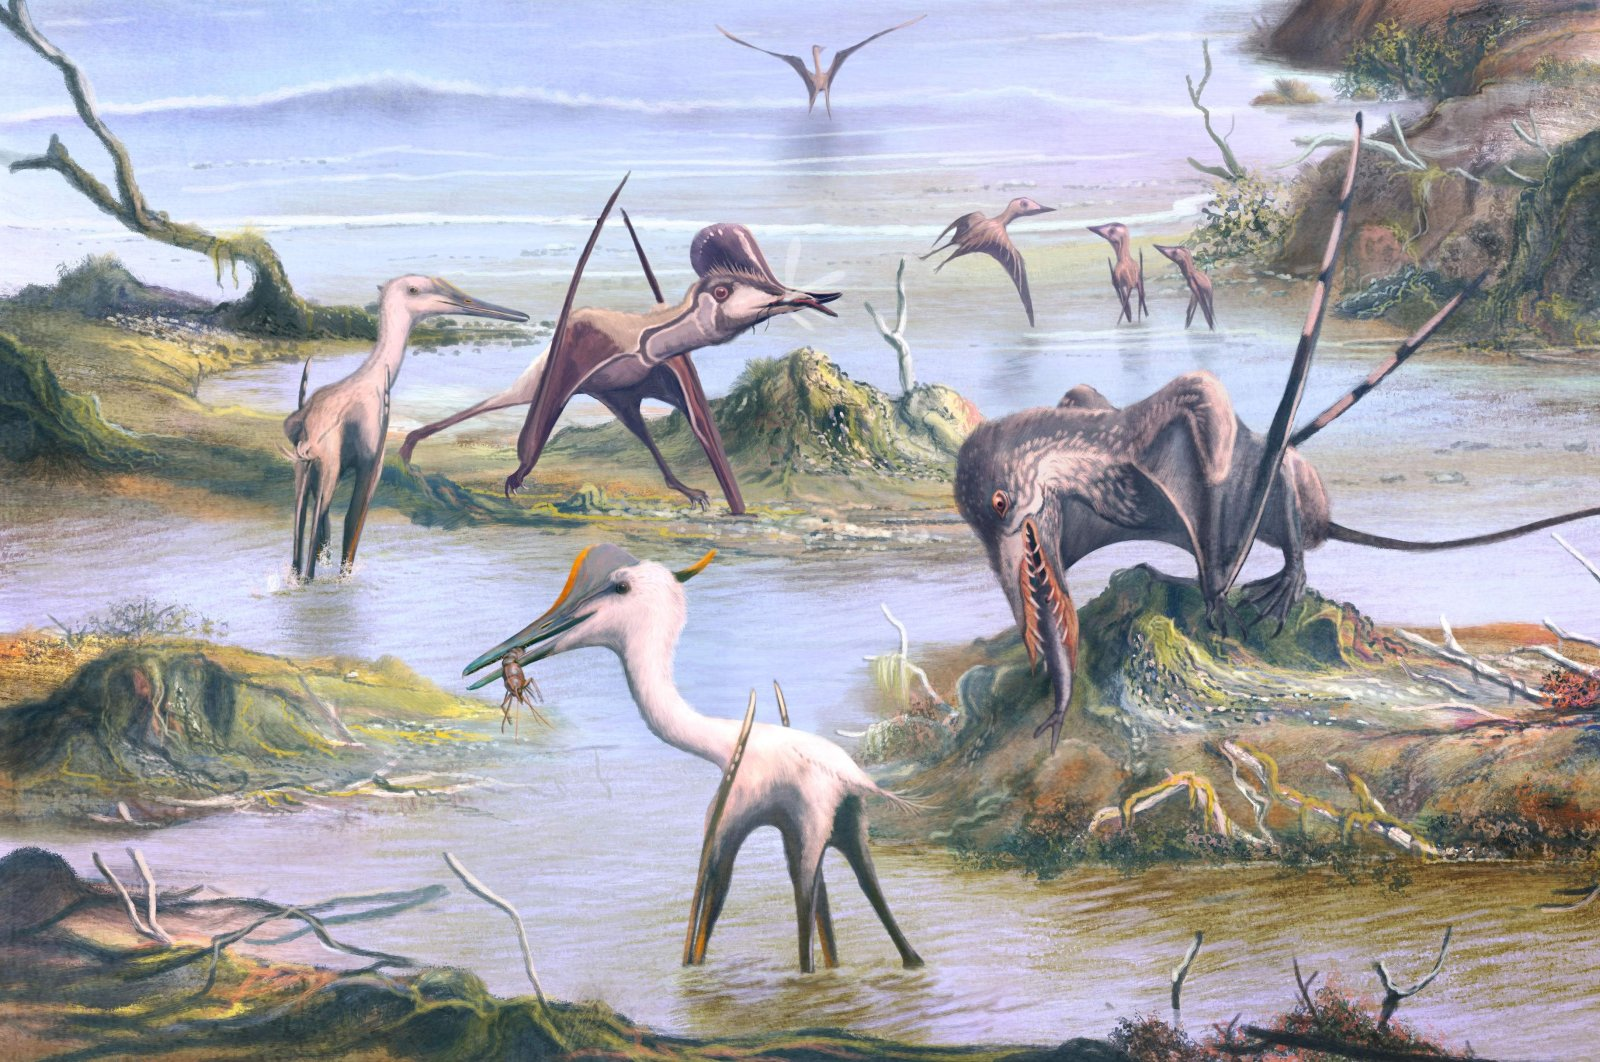 This handout picture released by the University of Birmingham on October 28, 2020, shows an artist's impression of a scene from southern Germany 150 million years ago, depicting the varied diets of pterosaurs, as inferred by dental microwear texture analysis. (Photo by Mark WITTON / UNIVERSITY OF BIRMINGHAM / AFP)